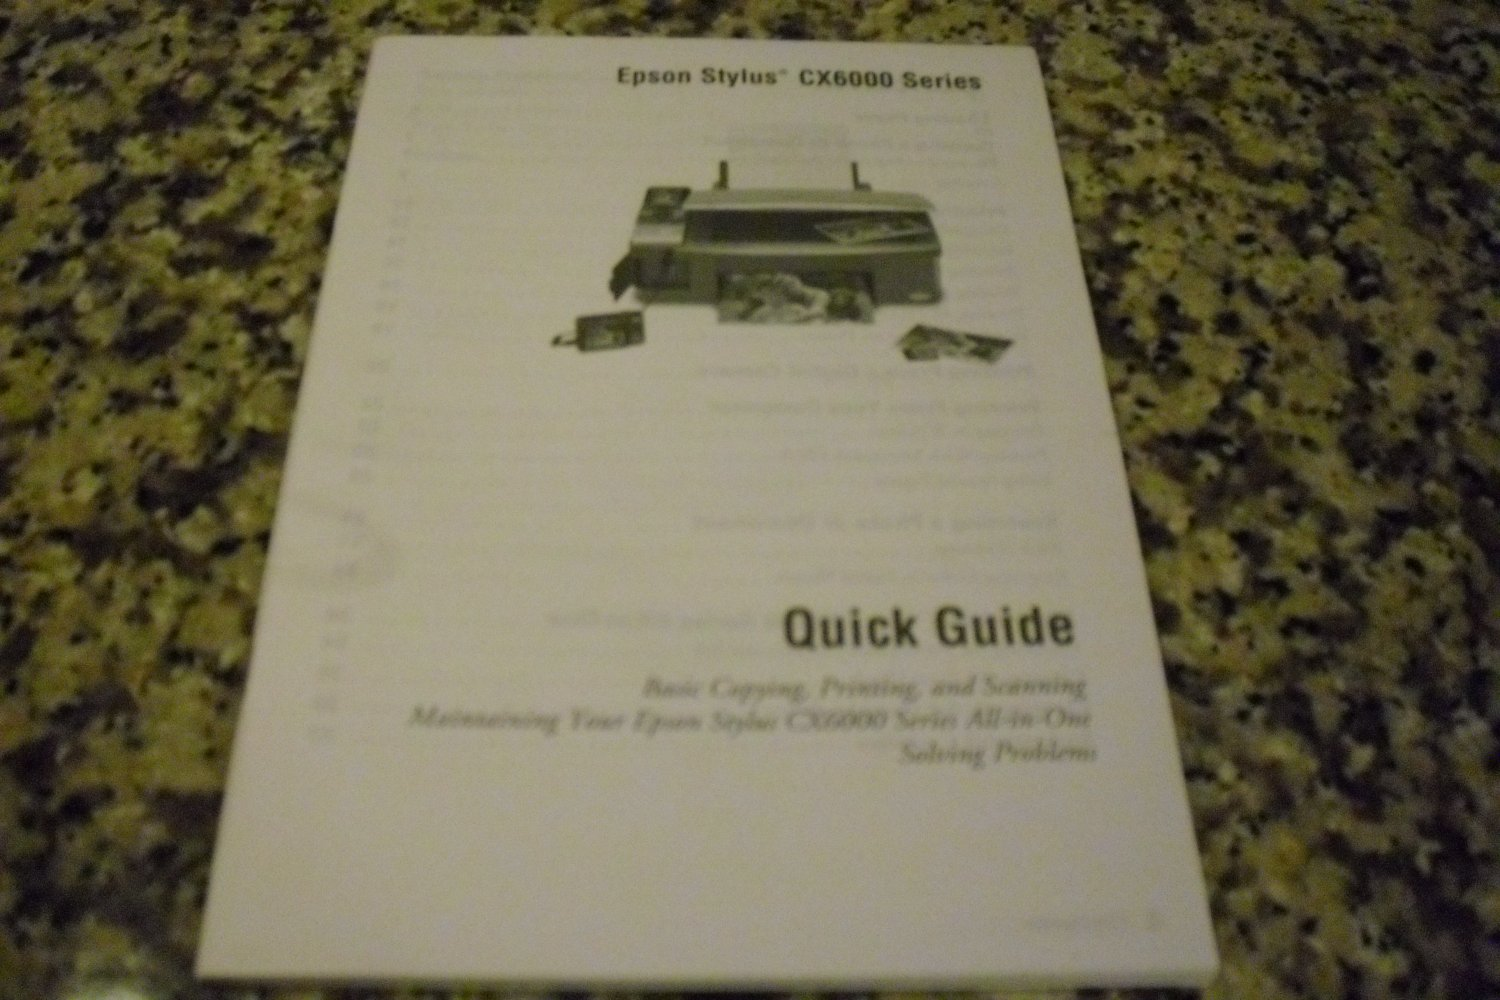 Epson Stylus CX600 Series Quick Guide Manual